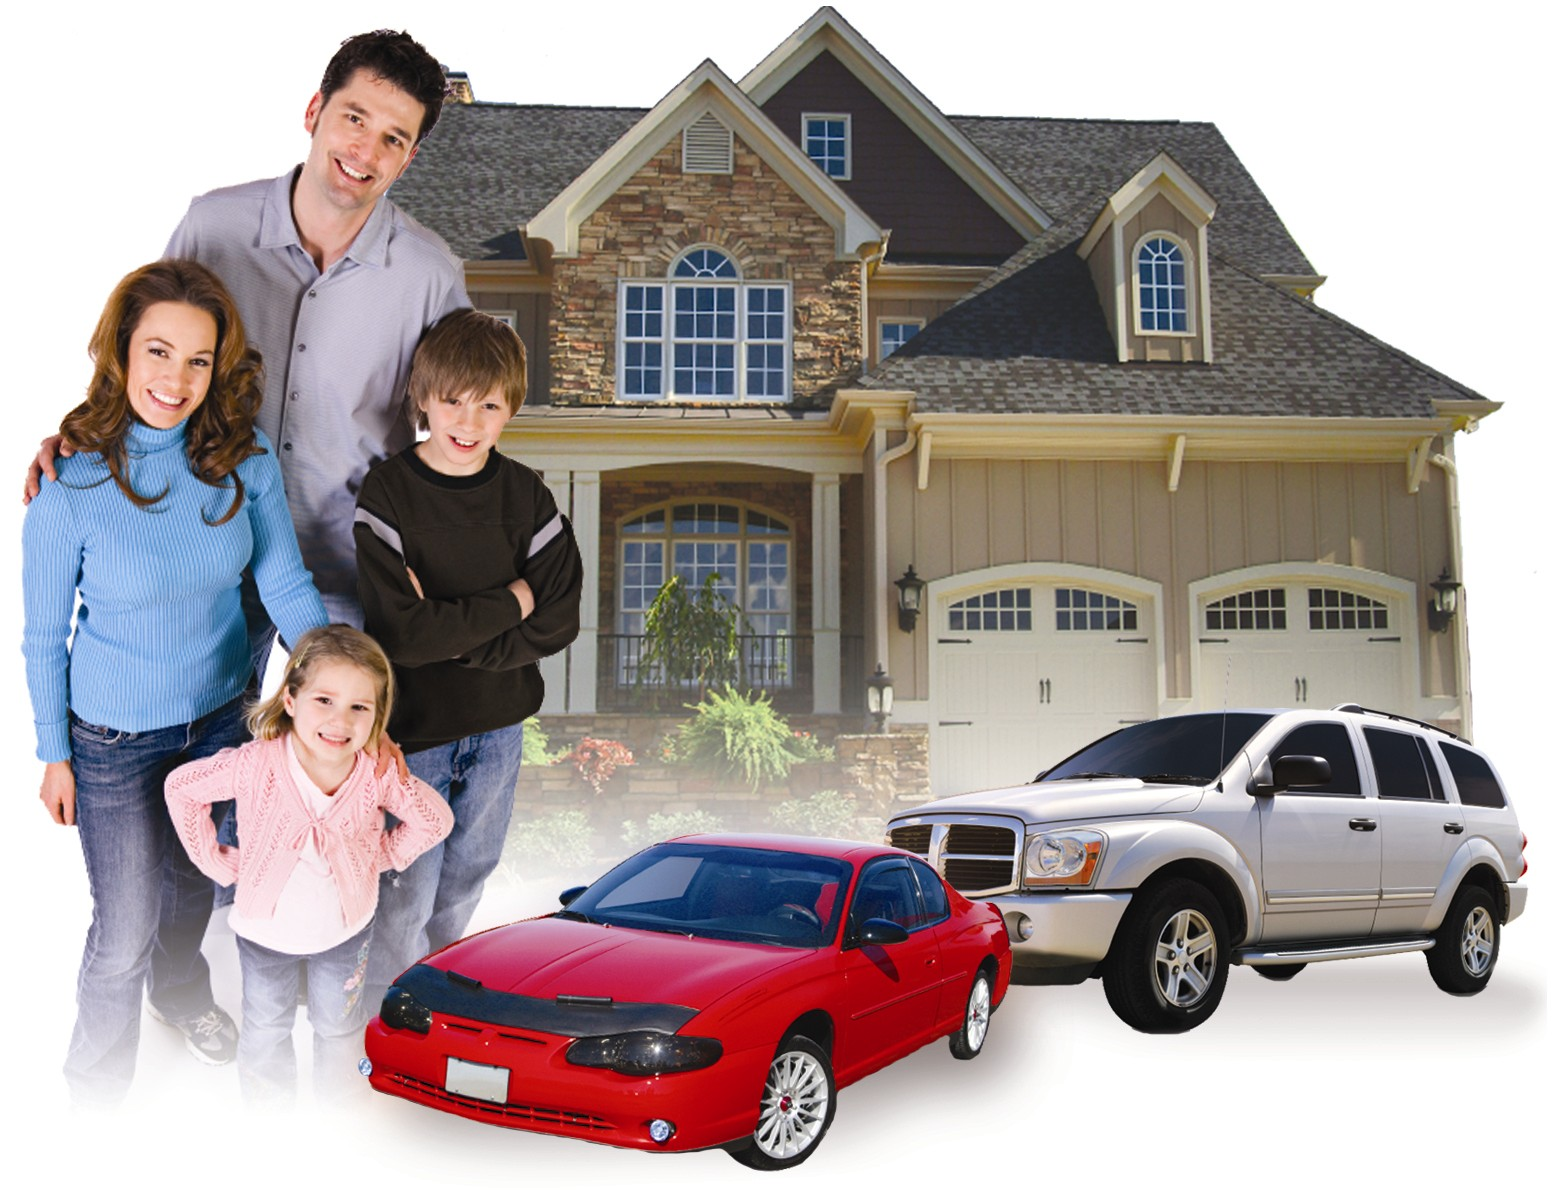 auto-home-family pic website